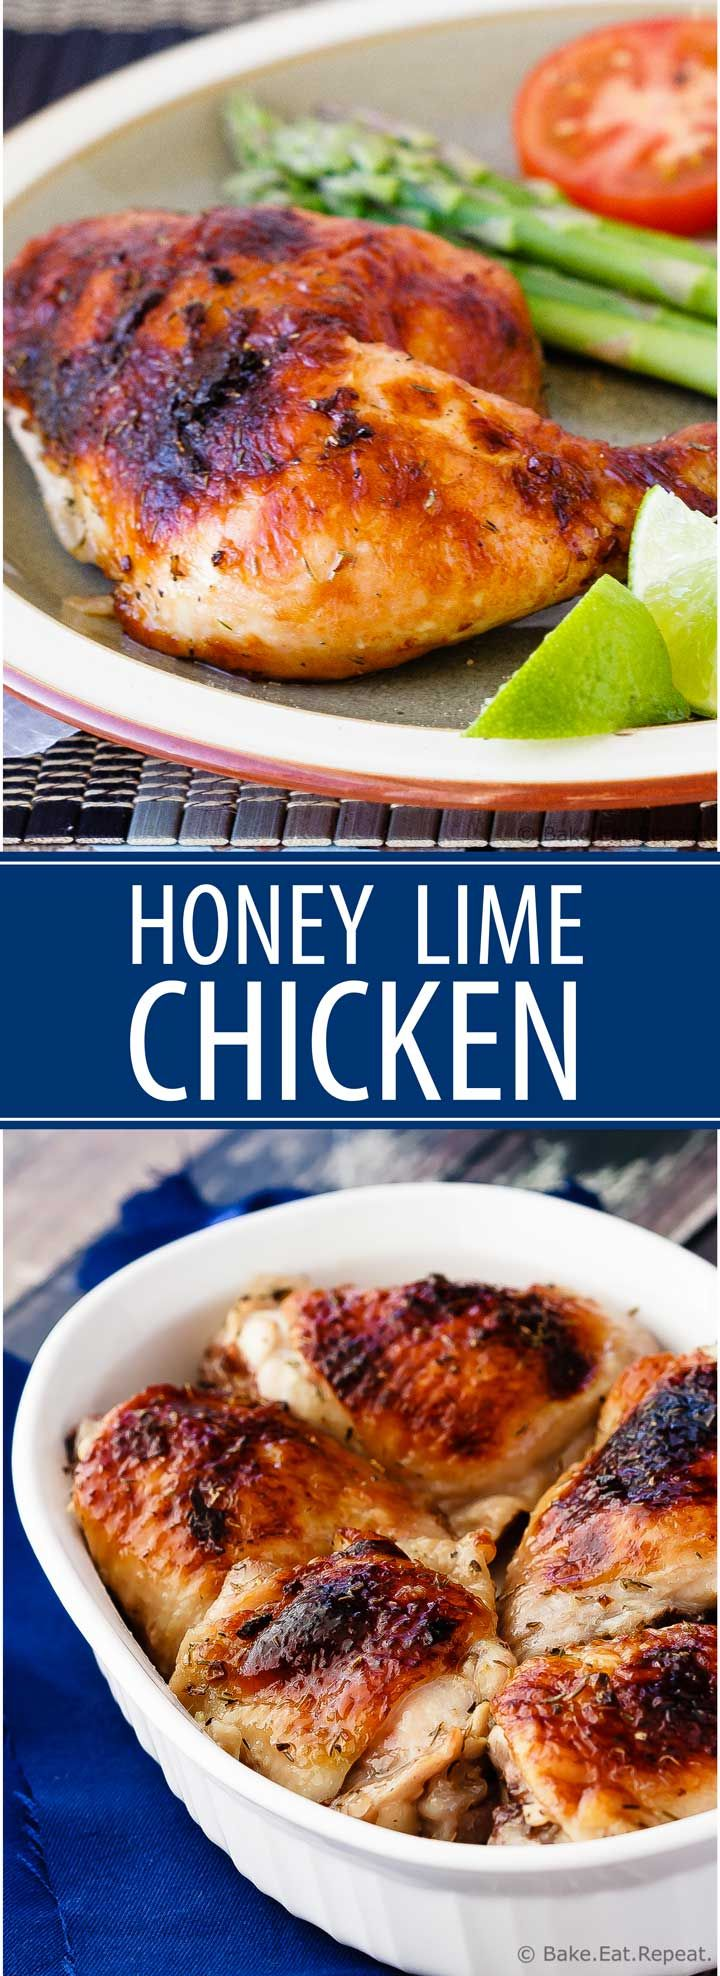 Honey Lime Chicken - Bake.Eat.Repeat. (simple, family friendly recipes)